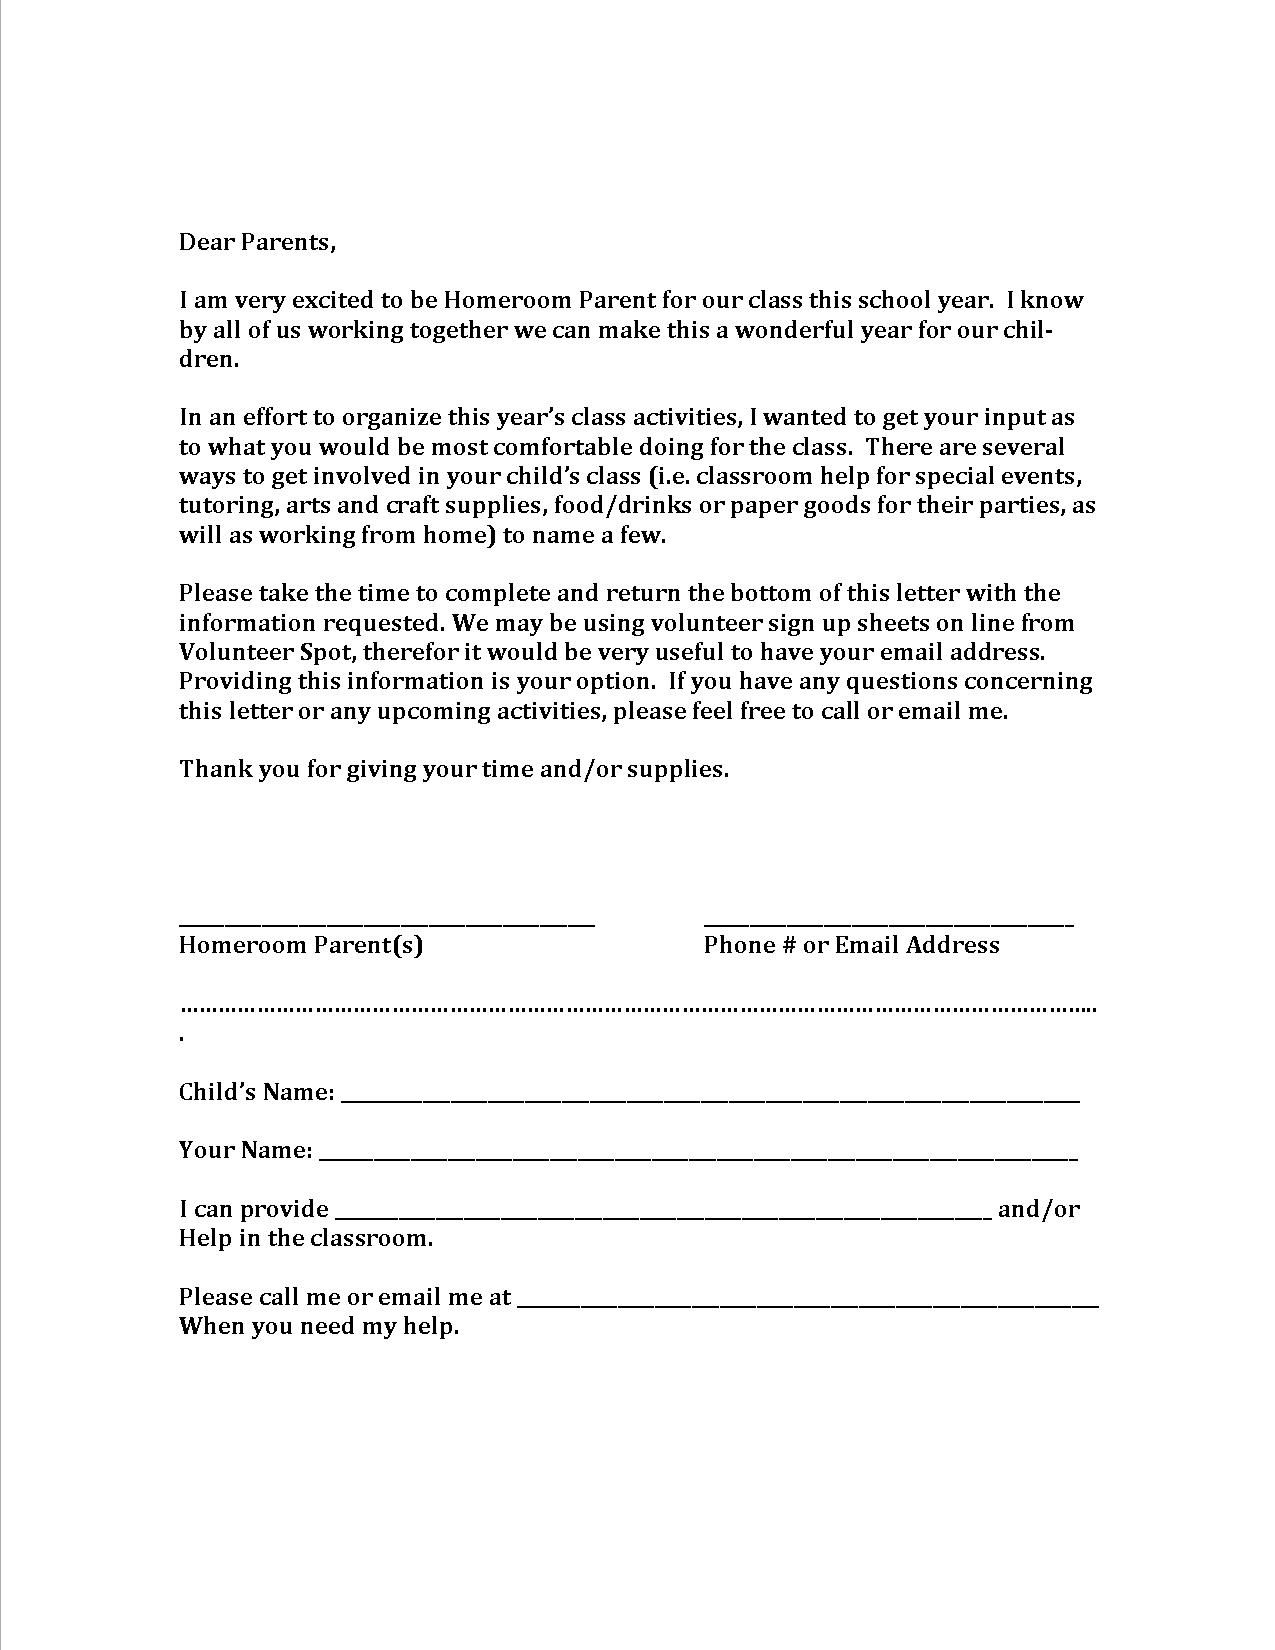 Volunteer letter template hdvolunteer letter template application volunteer letter template hdvolunteer letter template application letter sample spiritdancerdesigns